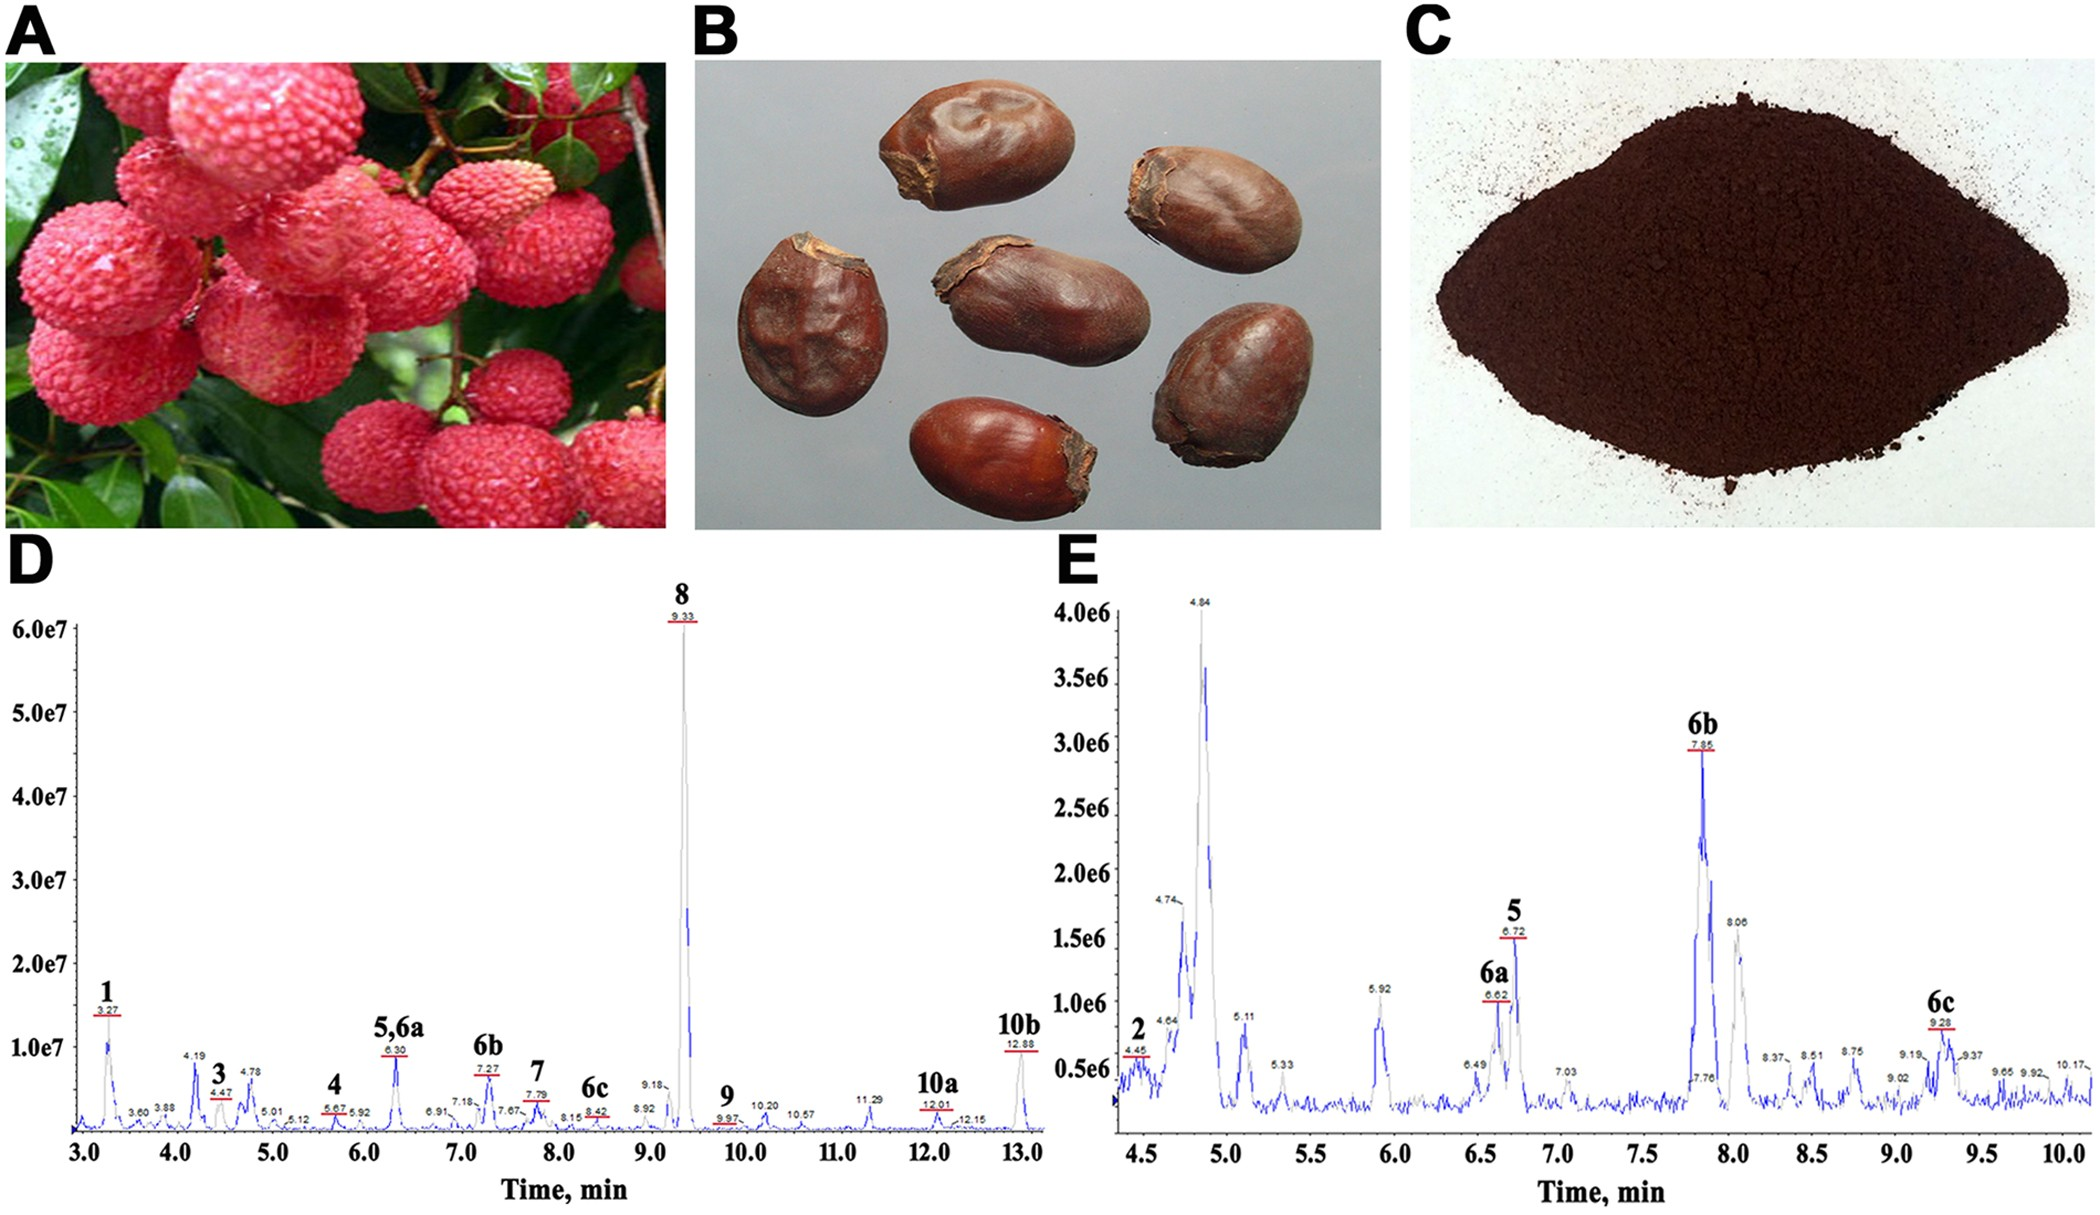 Litchi Seed Extracts Diminish Prostate Cancer Progression Via